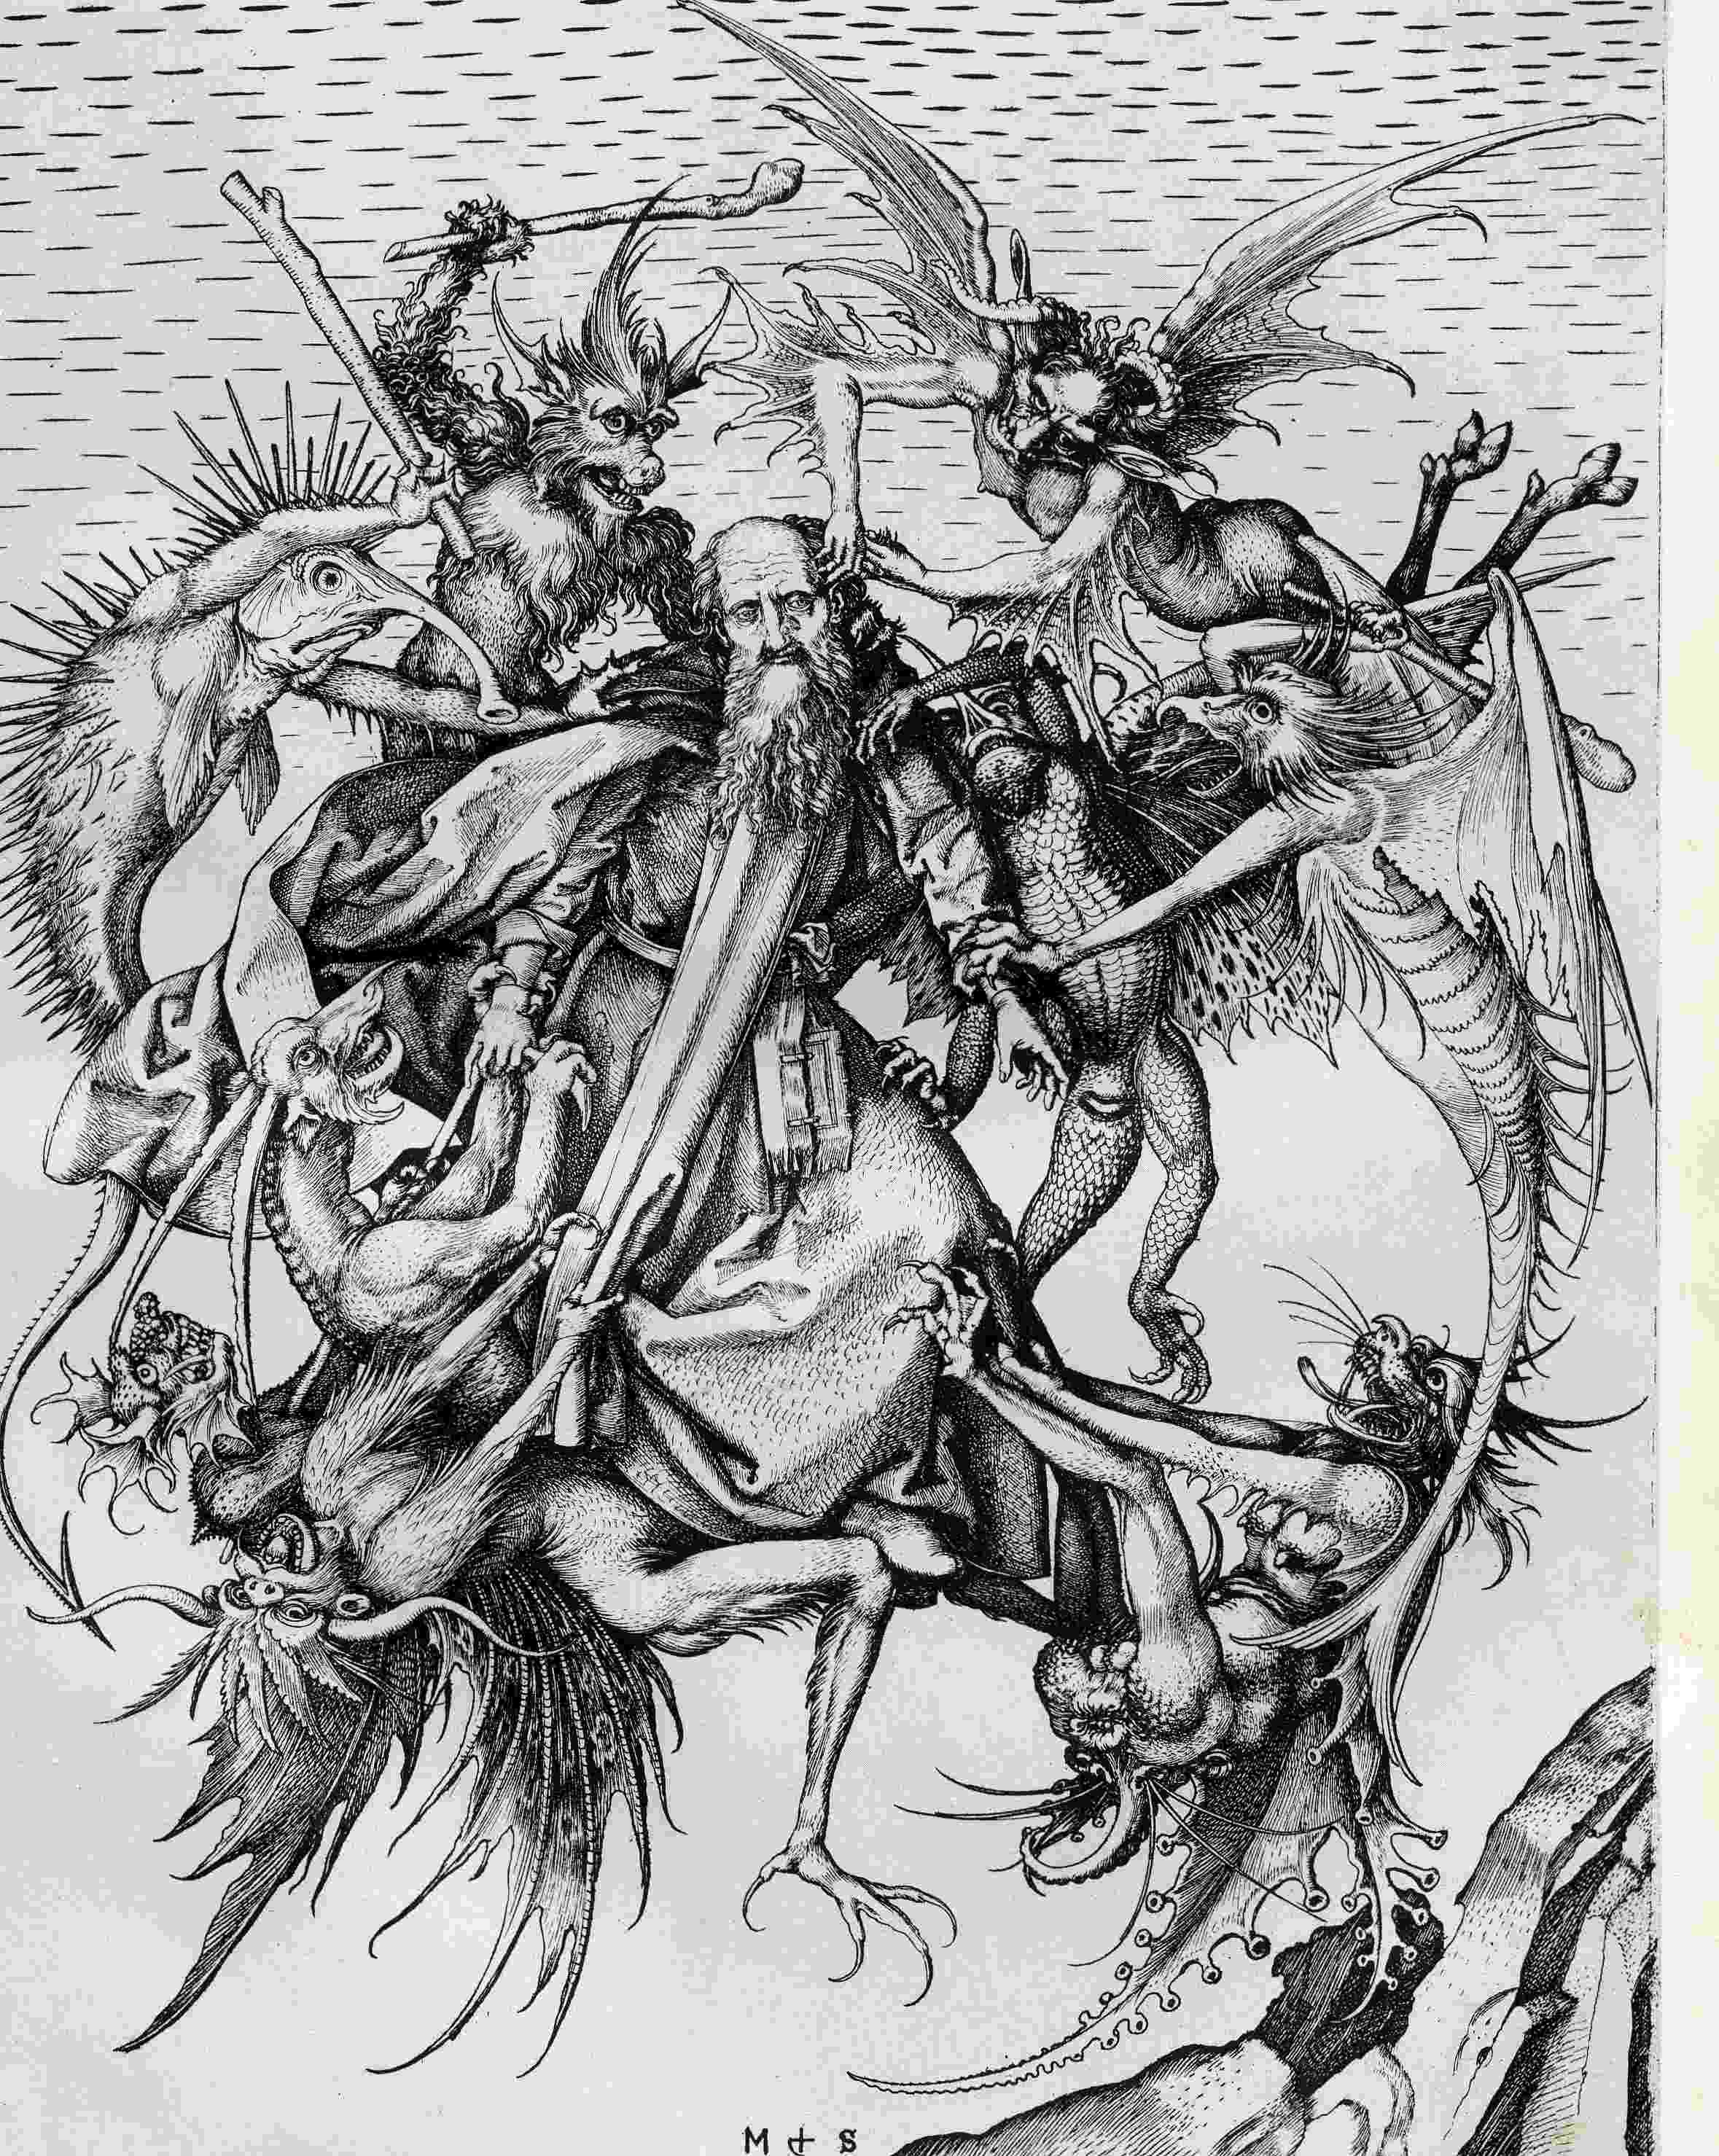 http://thewholegardenwillbow.files.wordpress.com/2008/11/schongauer-martin-anthony103.jpg